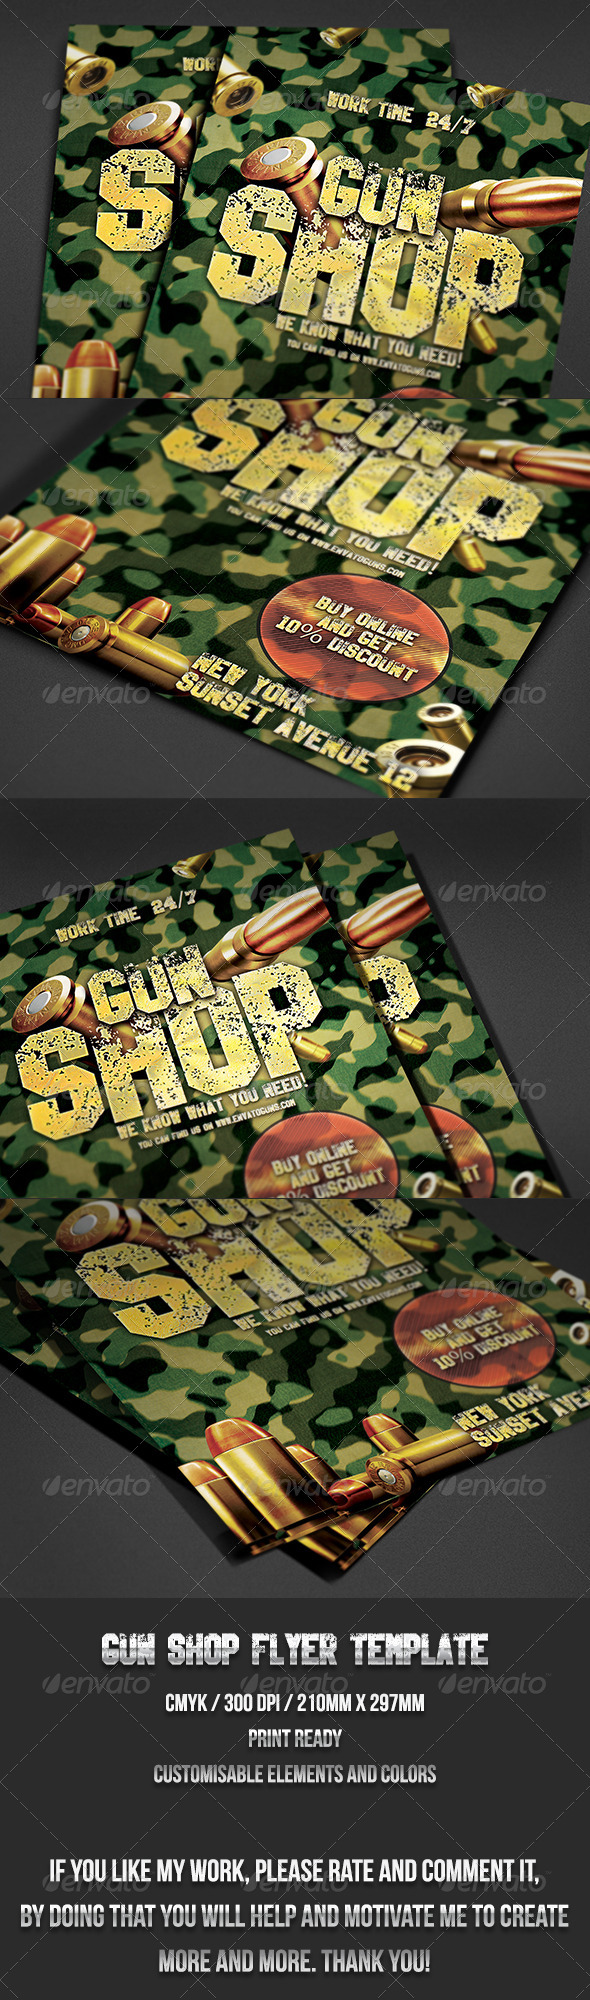 Gun Shop Flyer Template - Events Flyers